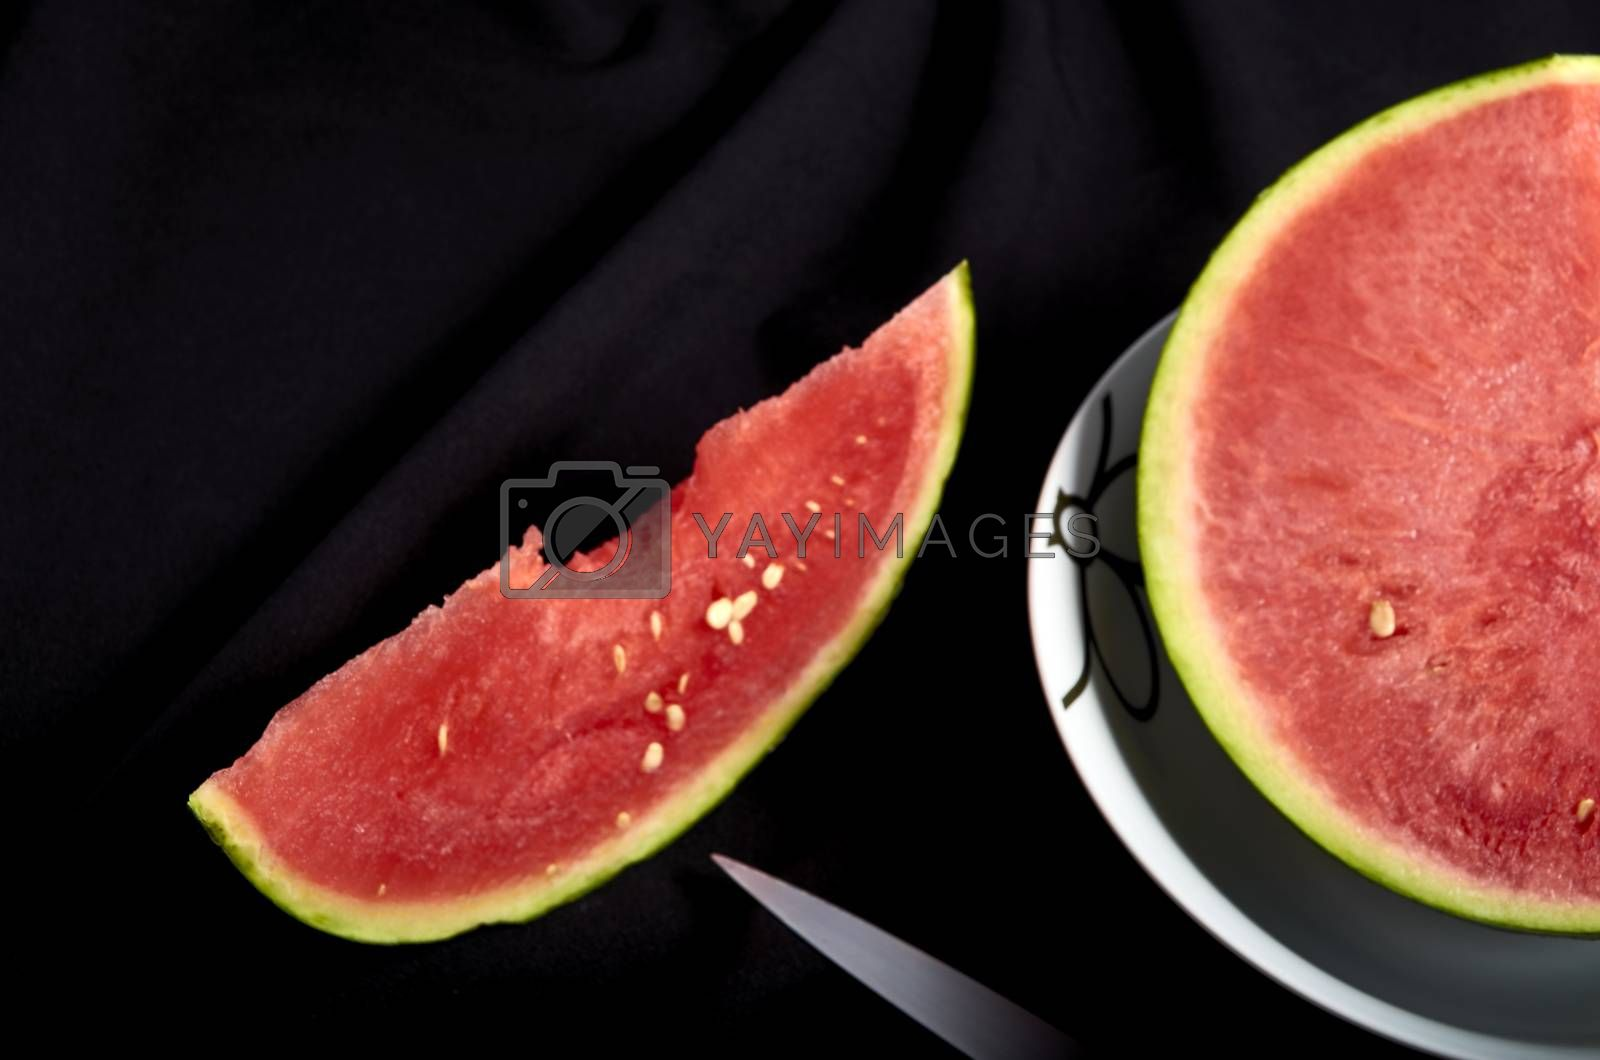 Image slice of watermelon with bite black background